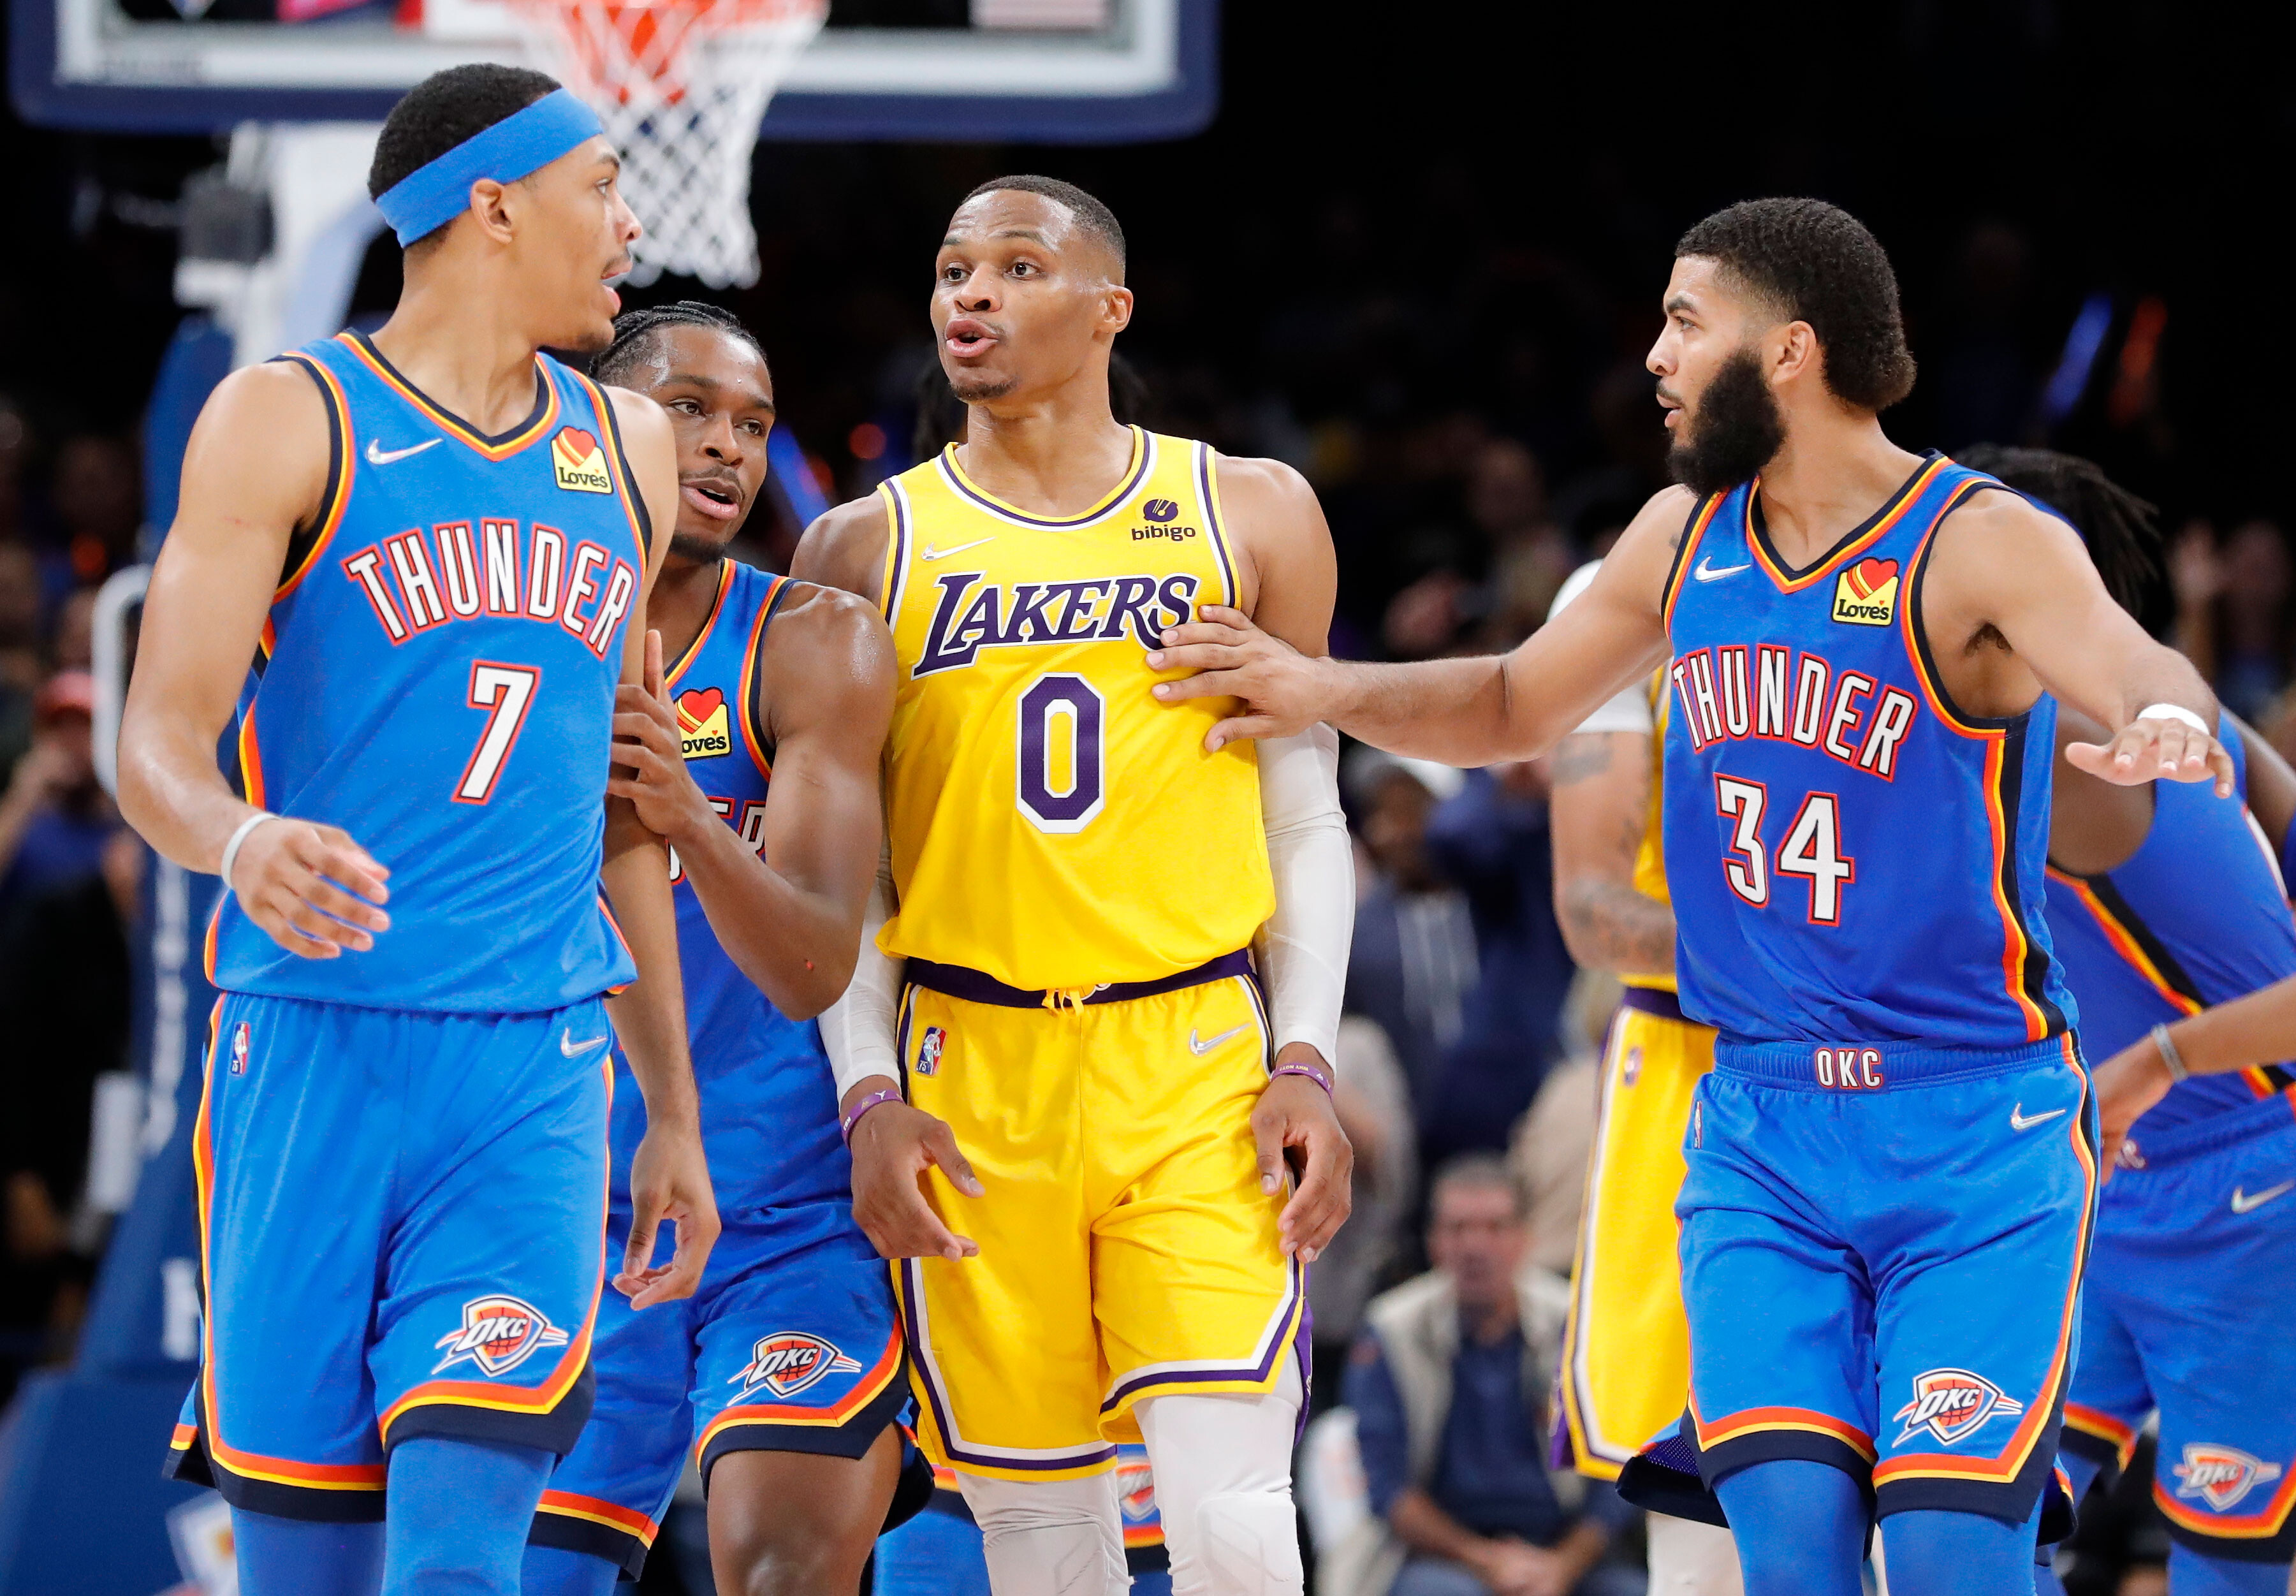 Los Angeles Lakers blow 26-point lead in defeat to the Oklahoma City Thunder